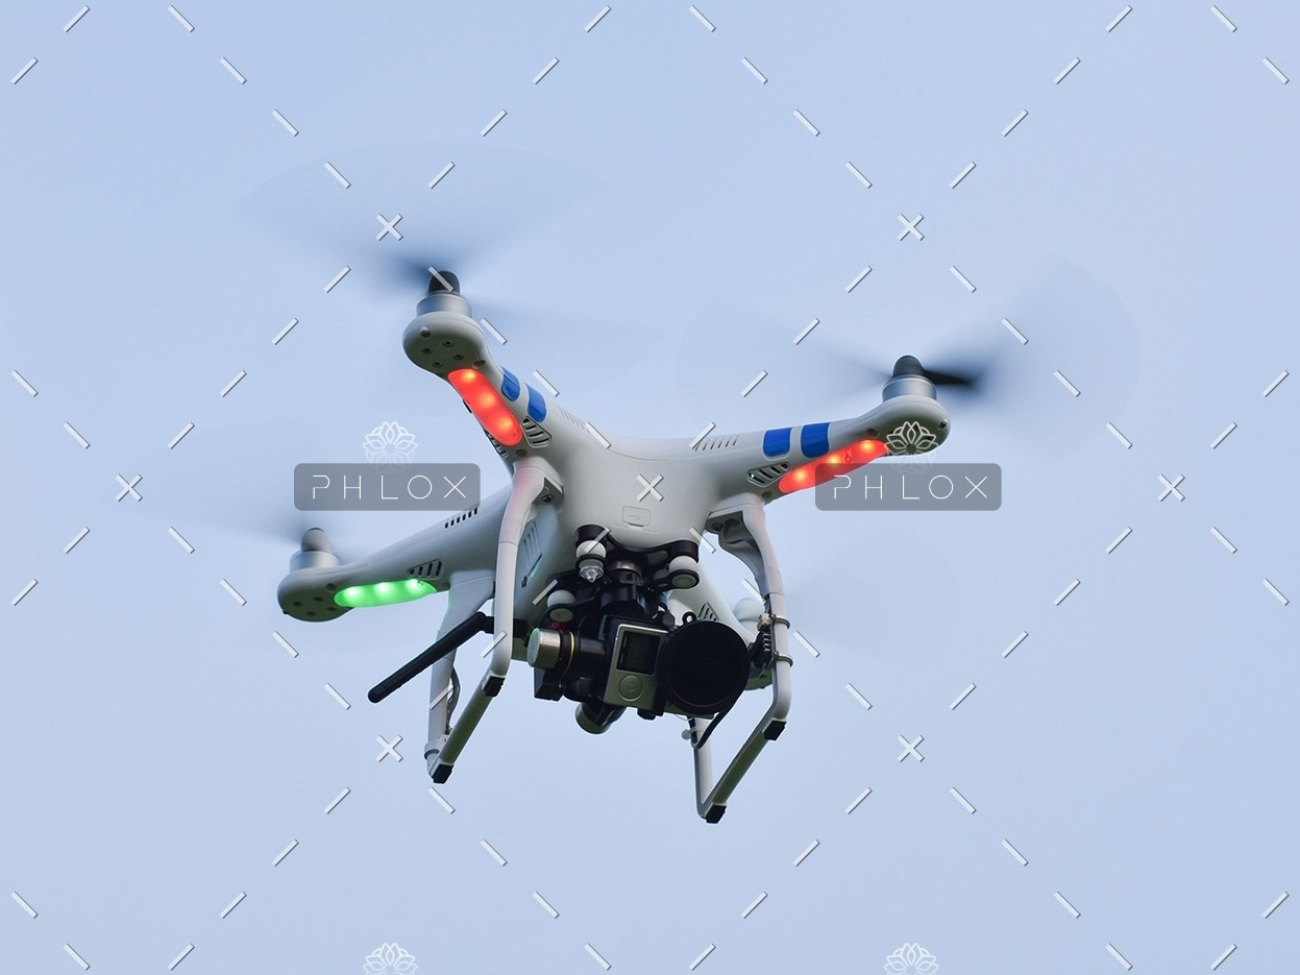 demo-attachment-82-camera-drone-fly-109003